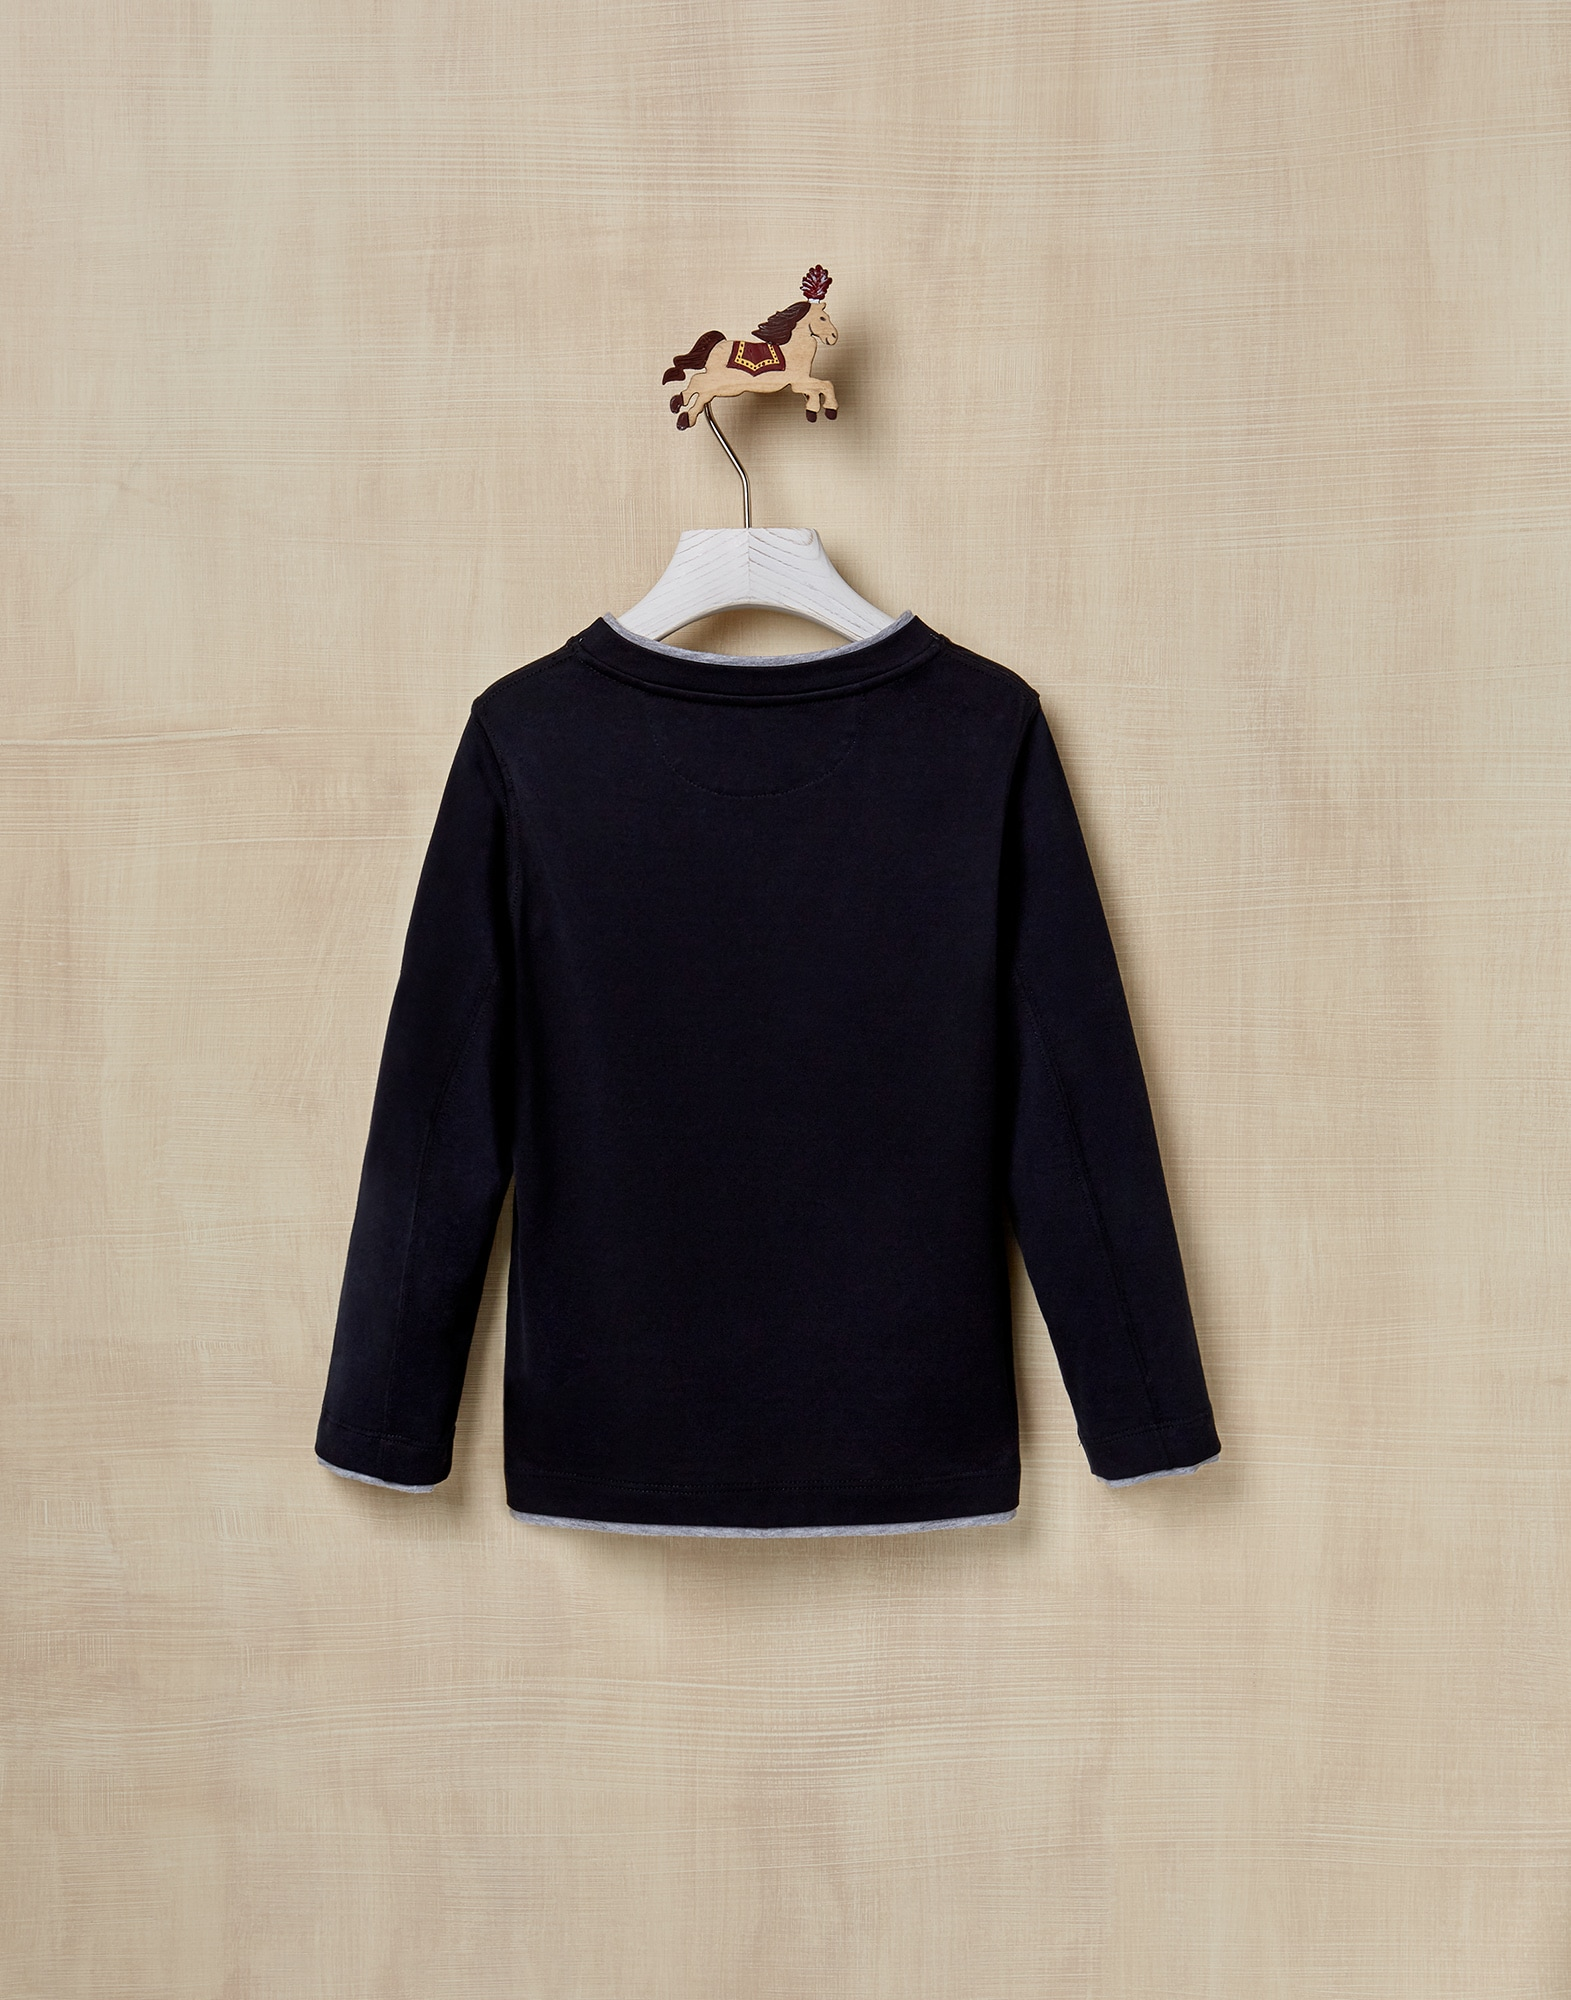 T-Shirt Navy Blue Boy 2 - Brunello Cucinelli